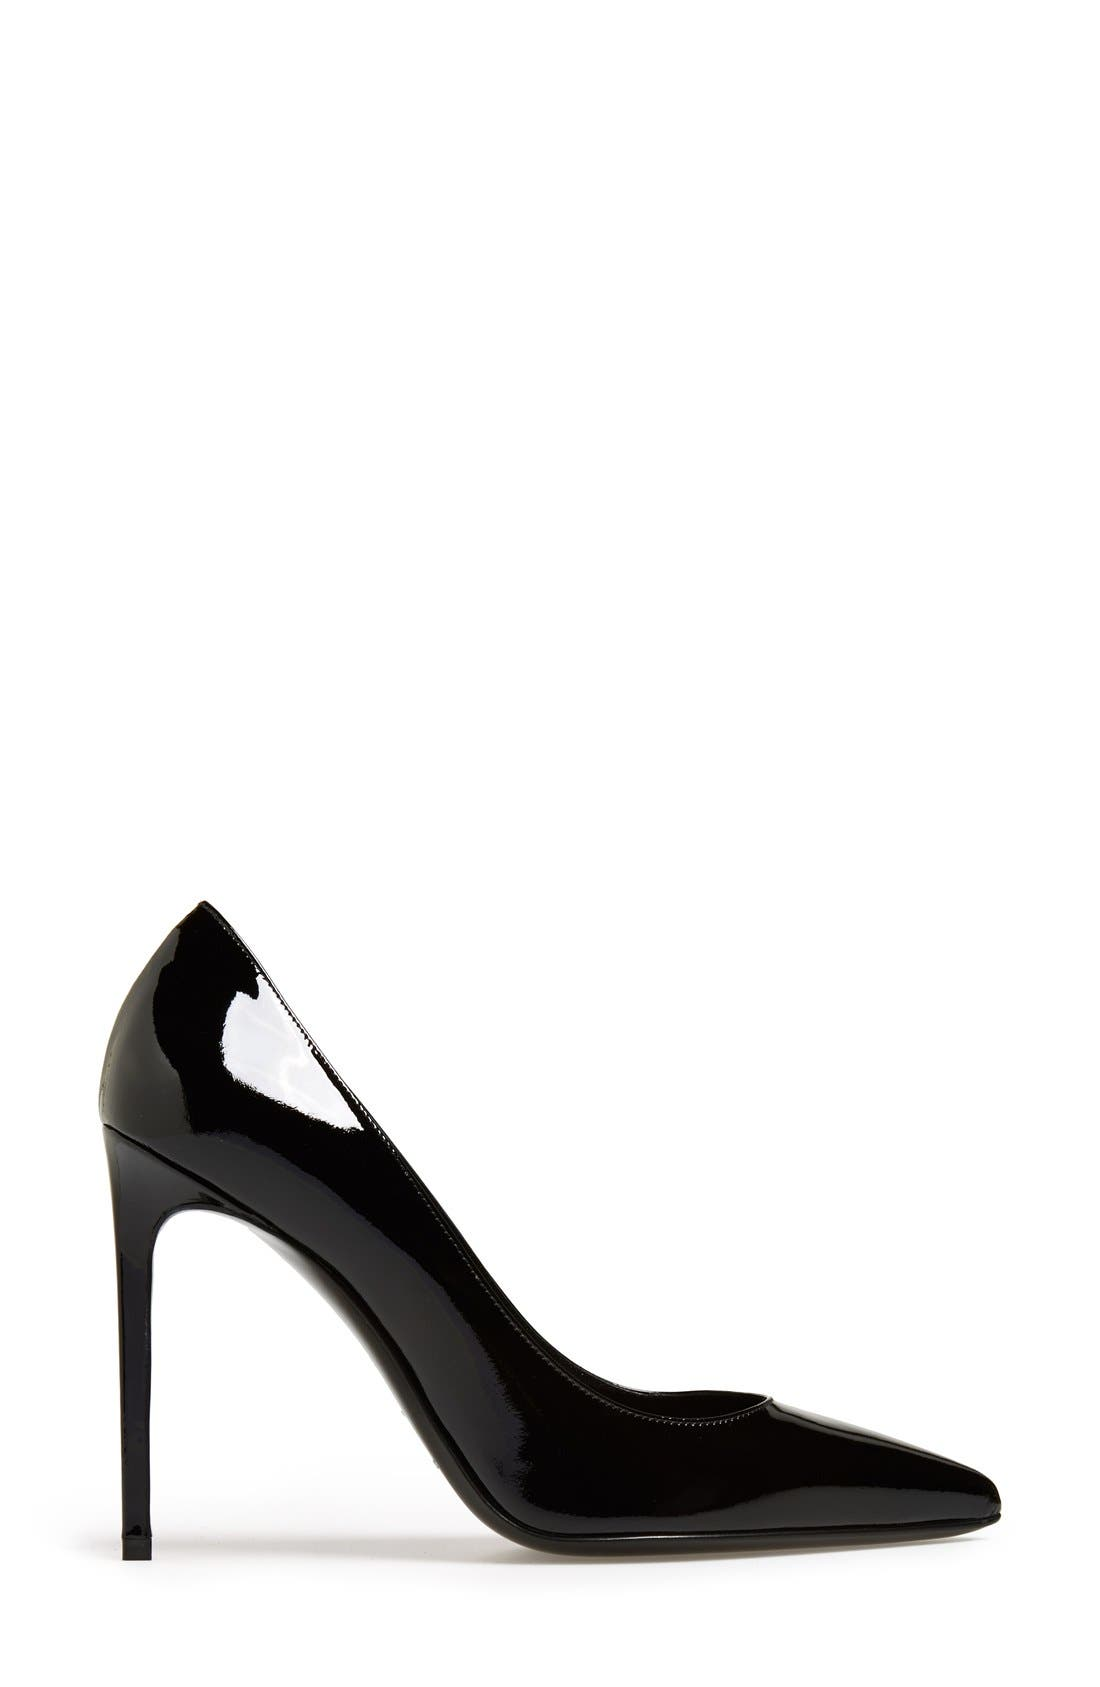 'Paris Skinny' Pointy Toe Pump,                             Alternate thumbnail 4, color,                             Black